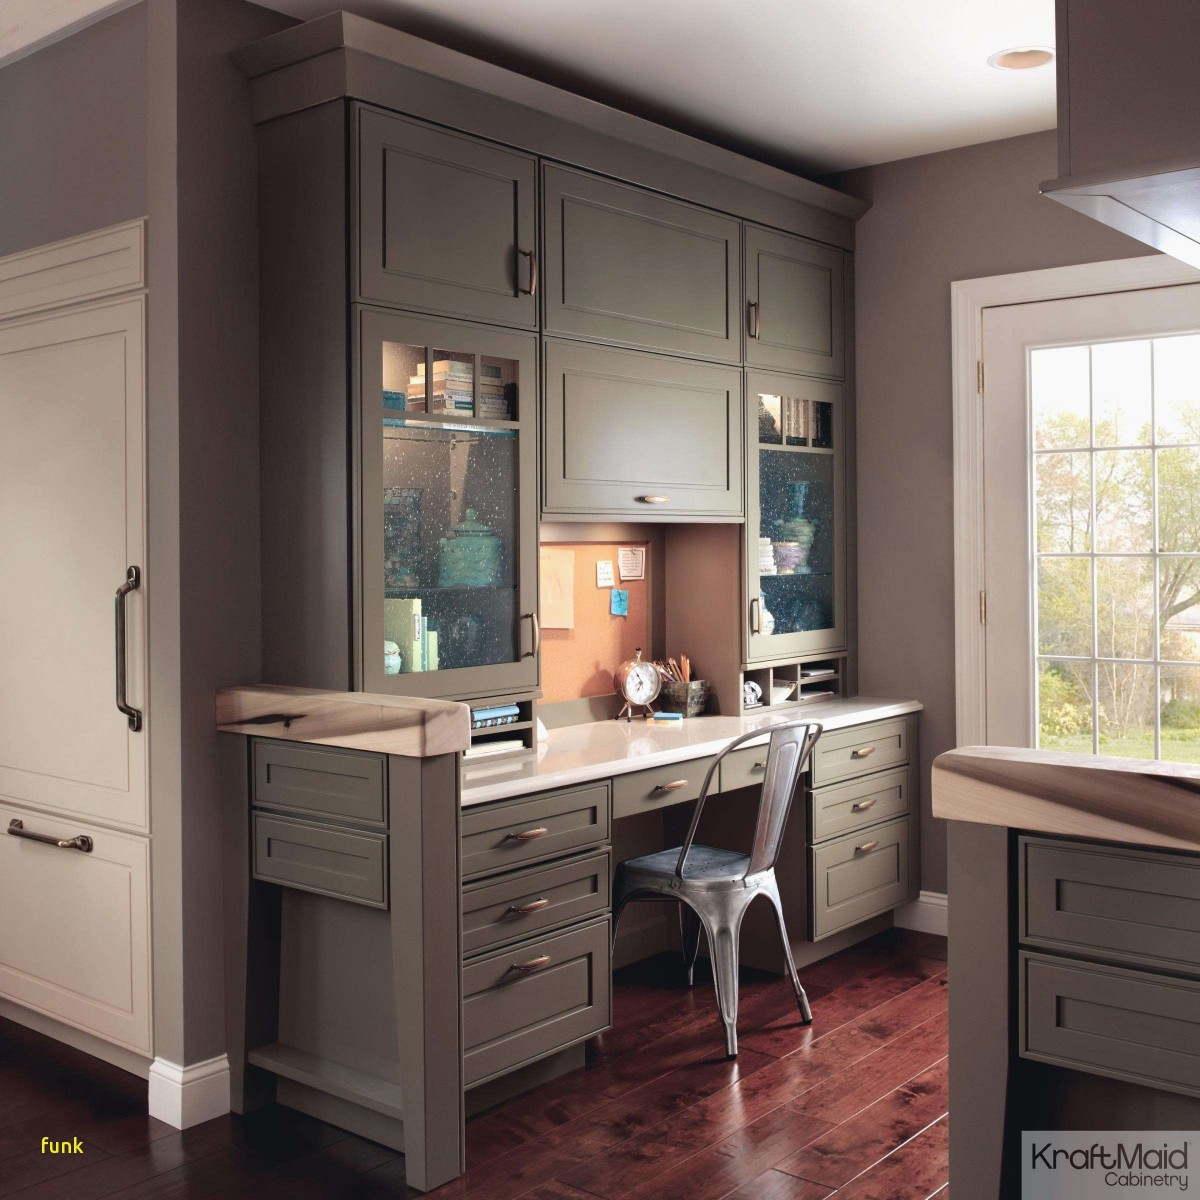 painted hardwood floors before and after of 37 fascinating old kitchen cabinets photograph in old kitchen cabinets inspirational 32 new painting old kitchen cabinets stock home ideas